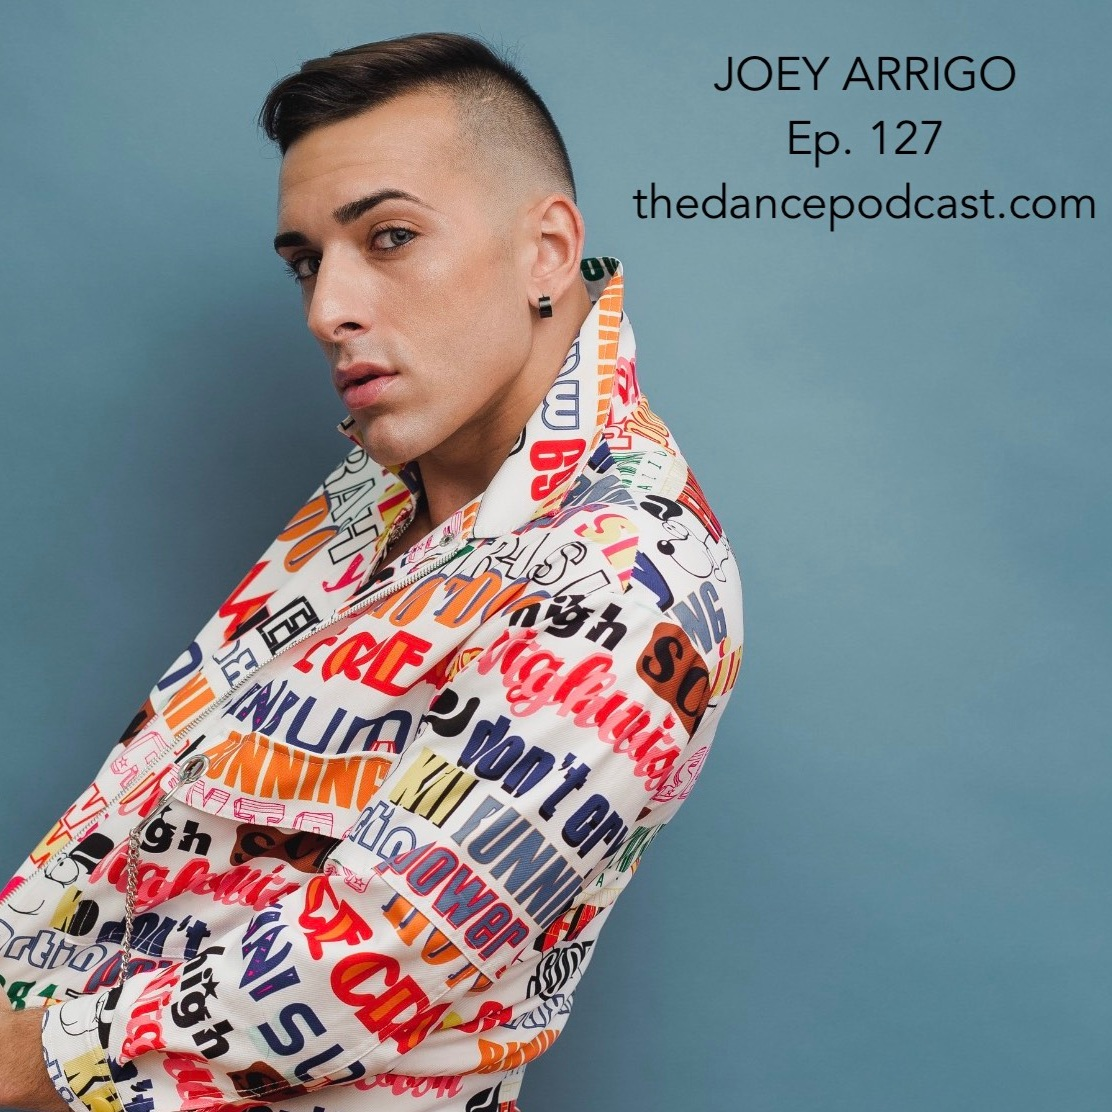 Joey Arrigo    Ep. #127    Cirque, STYTCD, Mia Michaels assistant and acro expert . Joey Arrigo is a dancer, aerialist and choreographer who hsa years of commercial, concert and circus experience. He opens about physical, mental and emotional health through his professional journey.